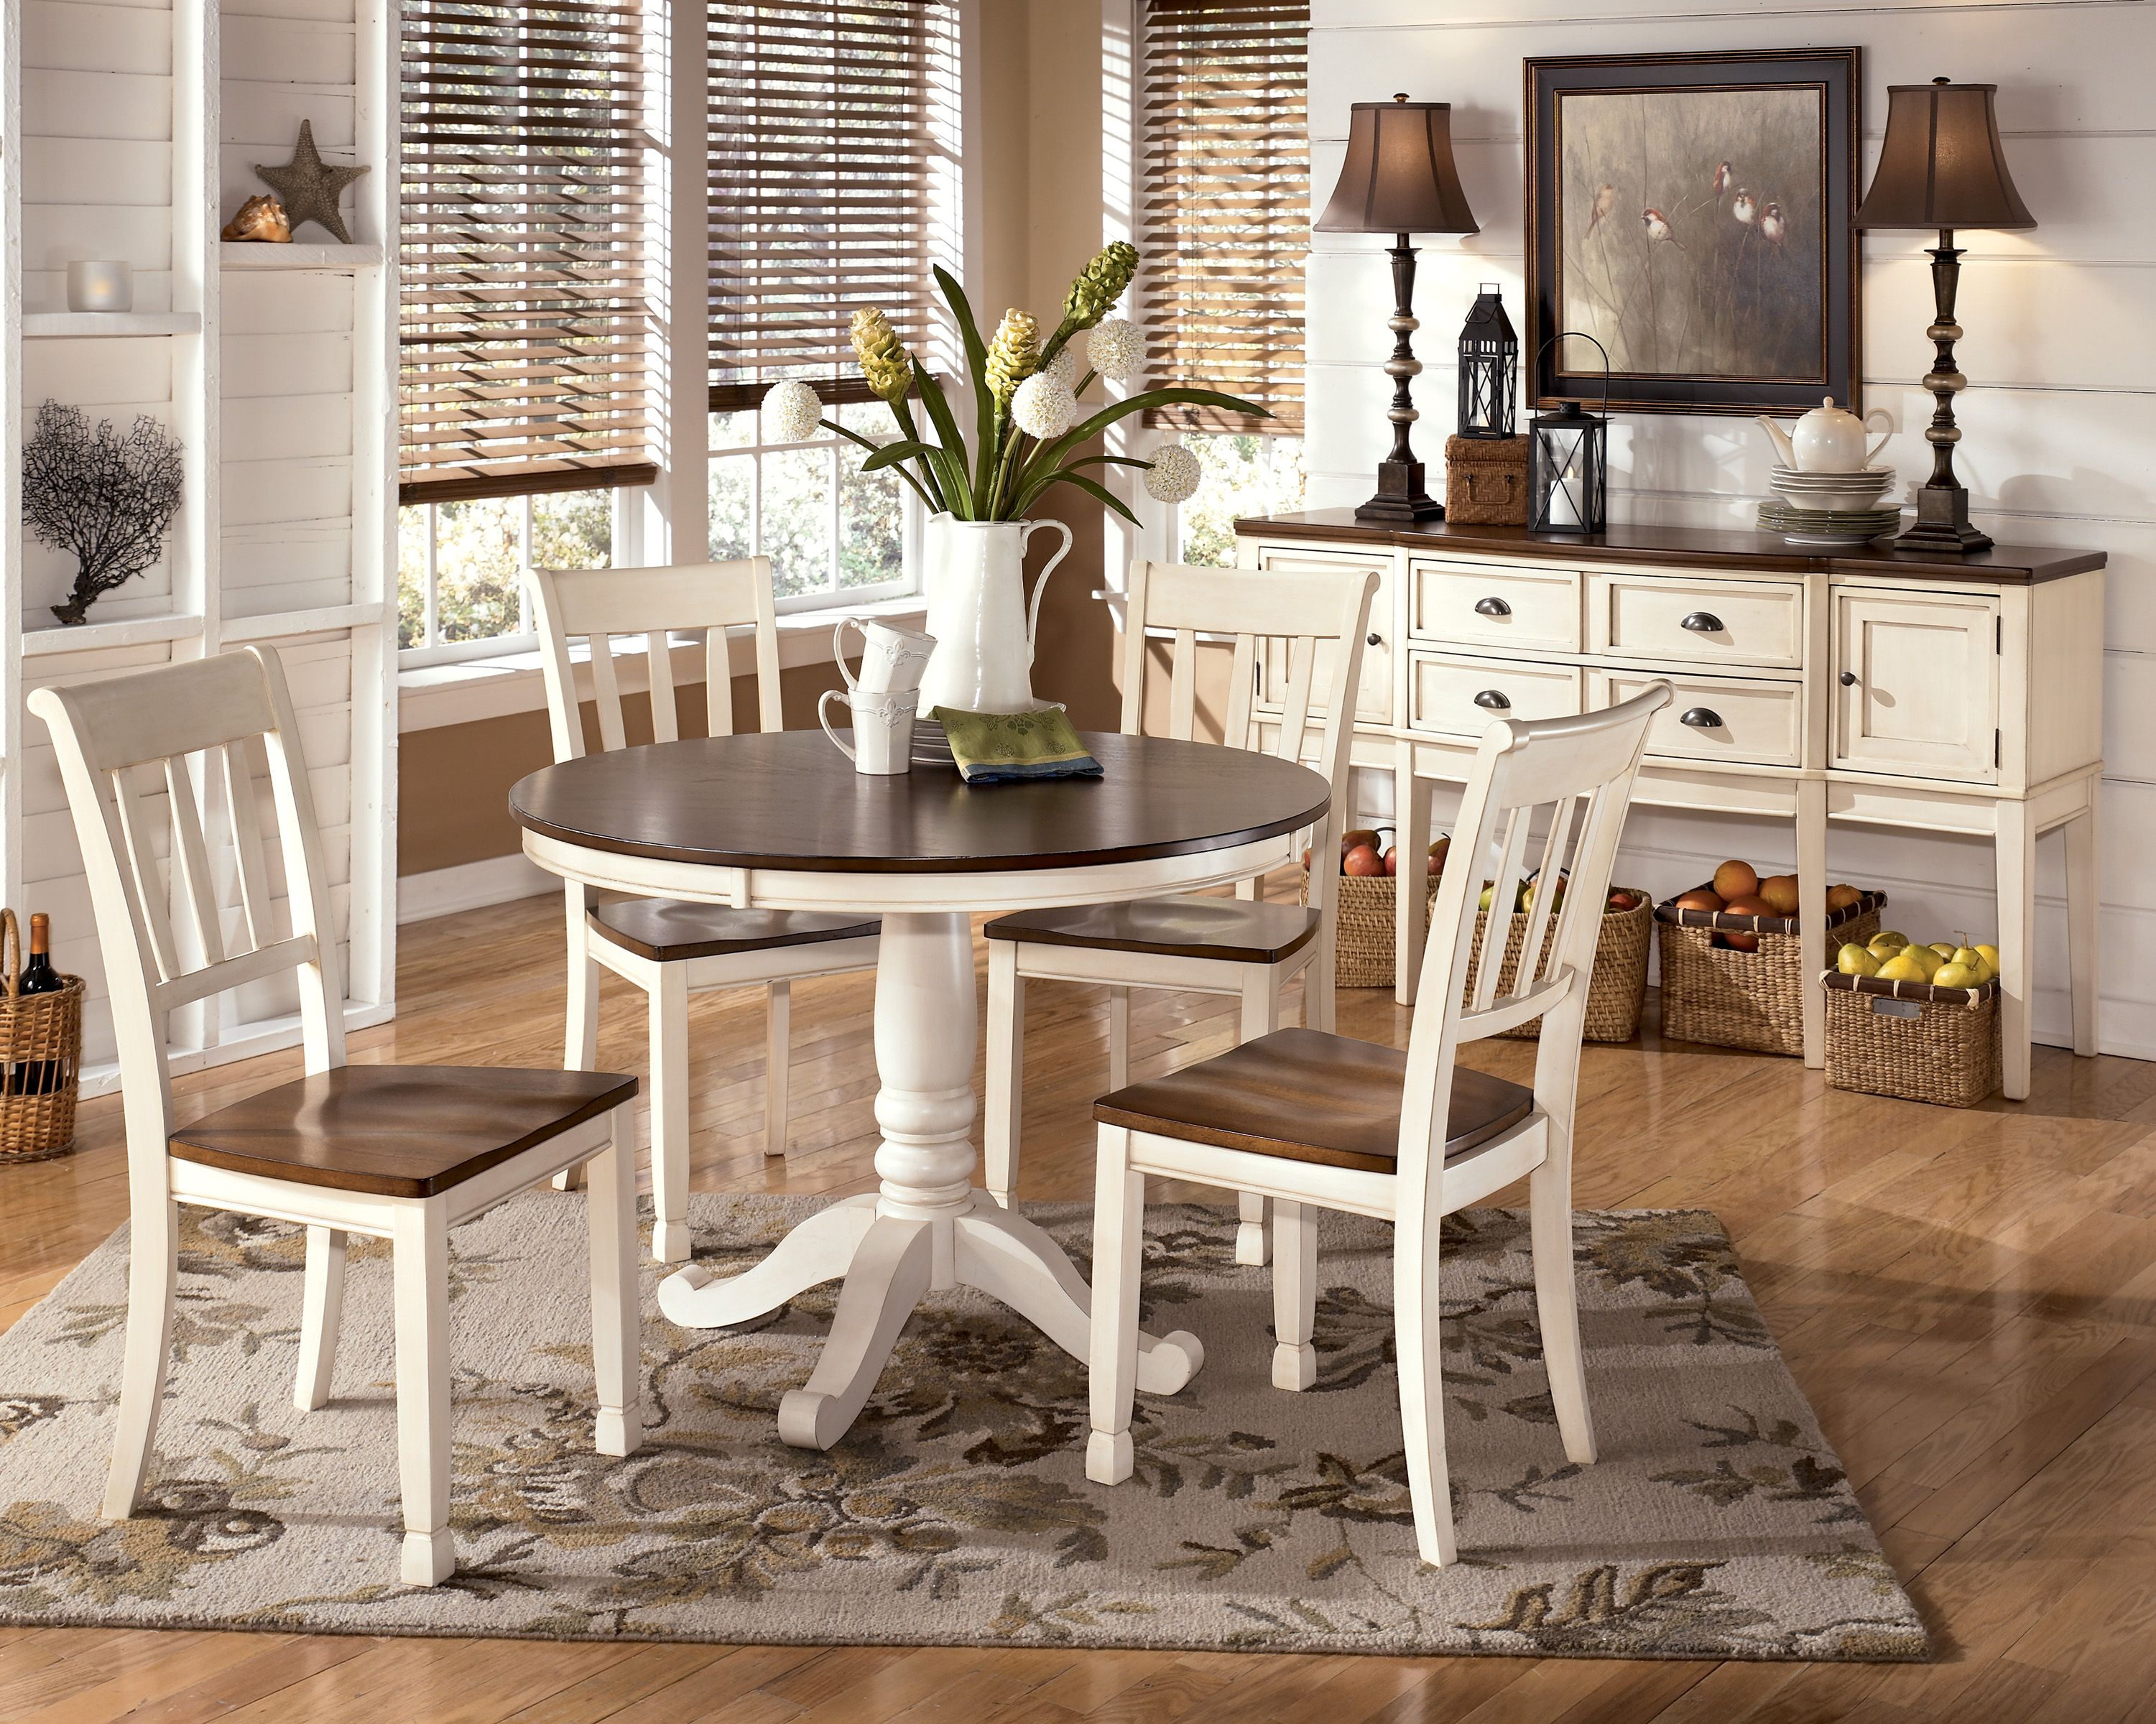 Whitesburg 5-Piece Round Dining Table Set in Brown - White | Decor ...